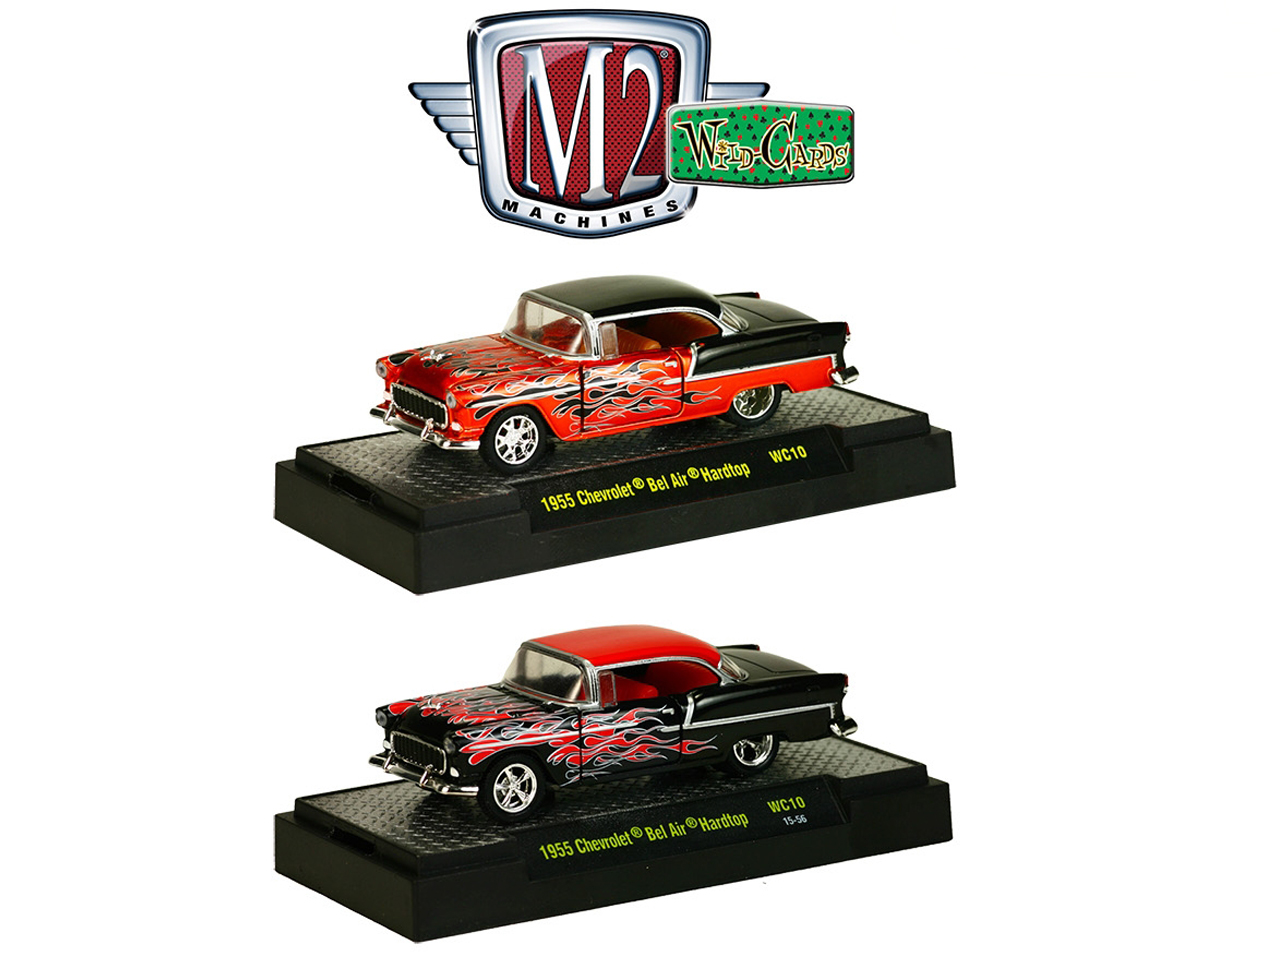 Wild Cards 1955 Chevrolet Bel Air Hardtop Candy Orange/Black Set of 2 WITH CASES 1/64 Diecast Model Cars by M2 Machines  32500-WC10